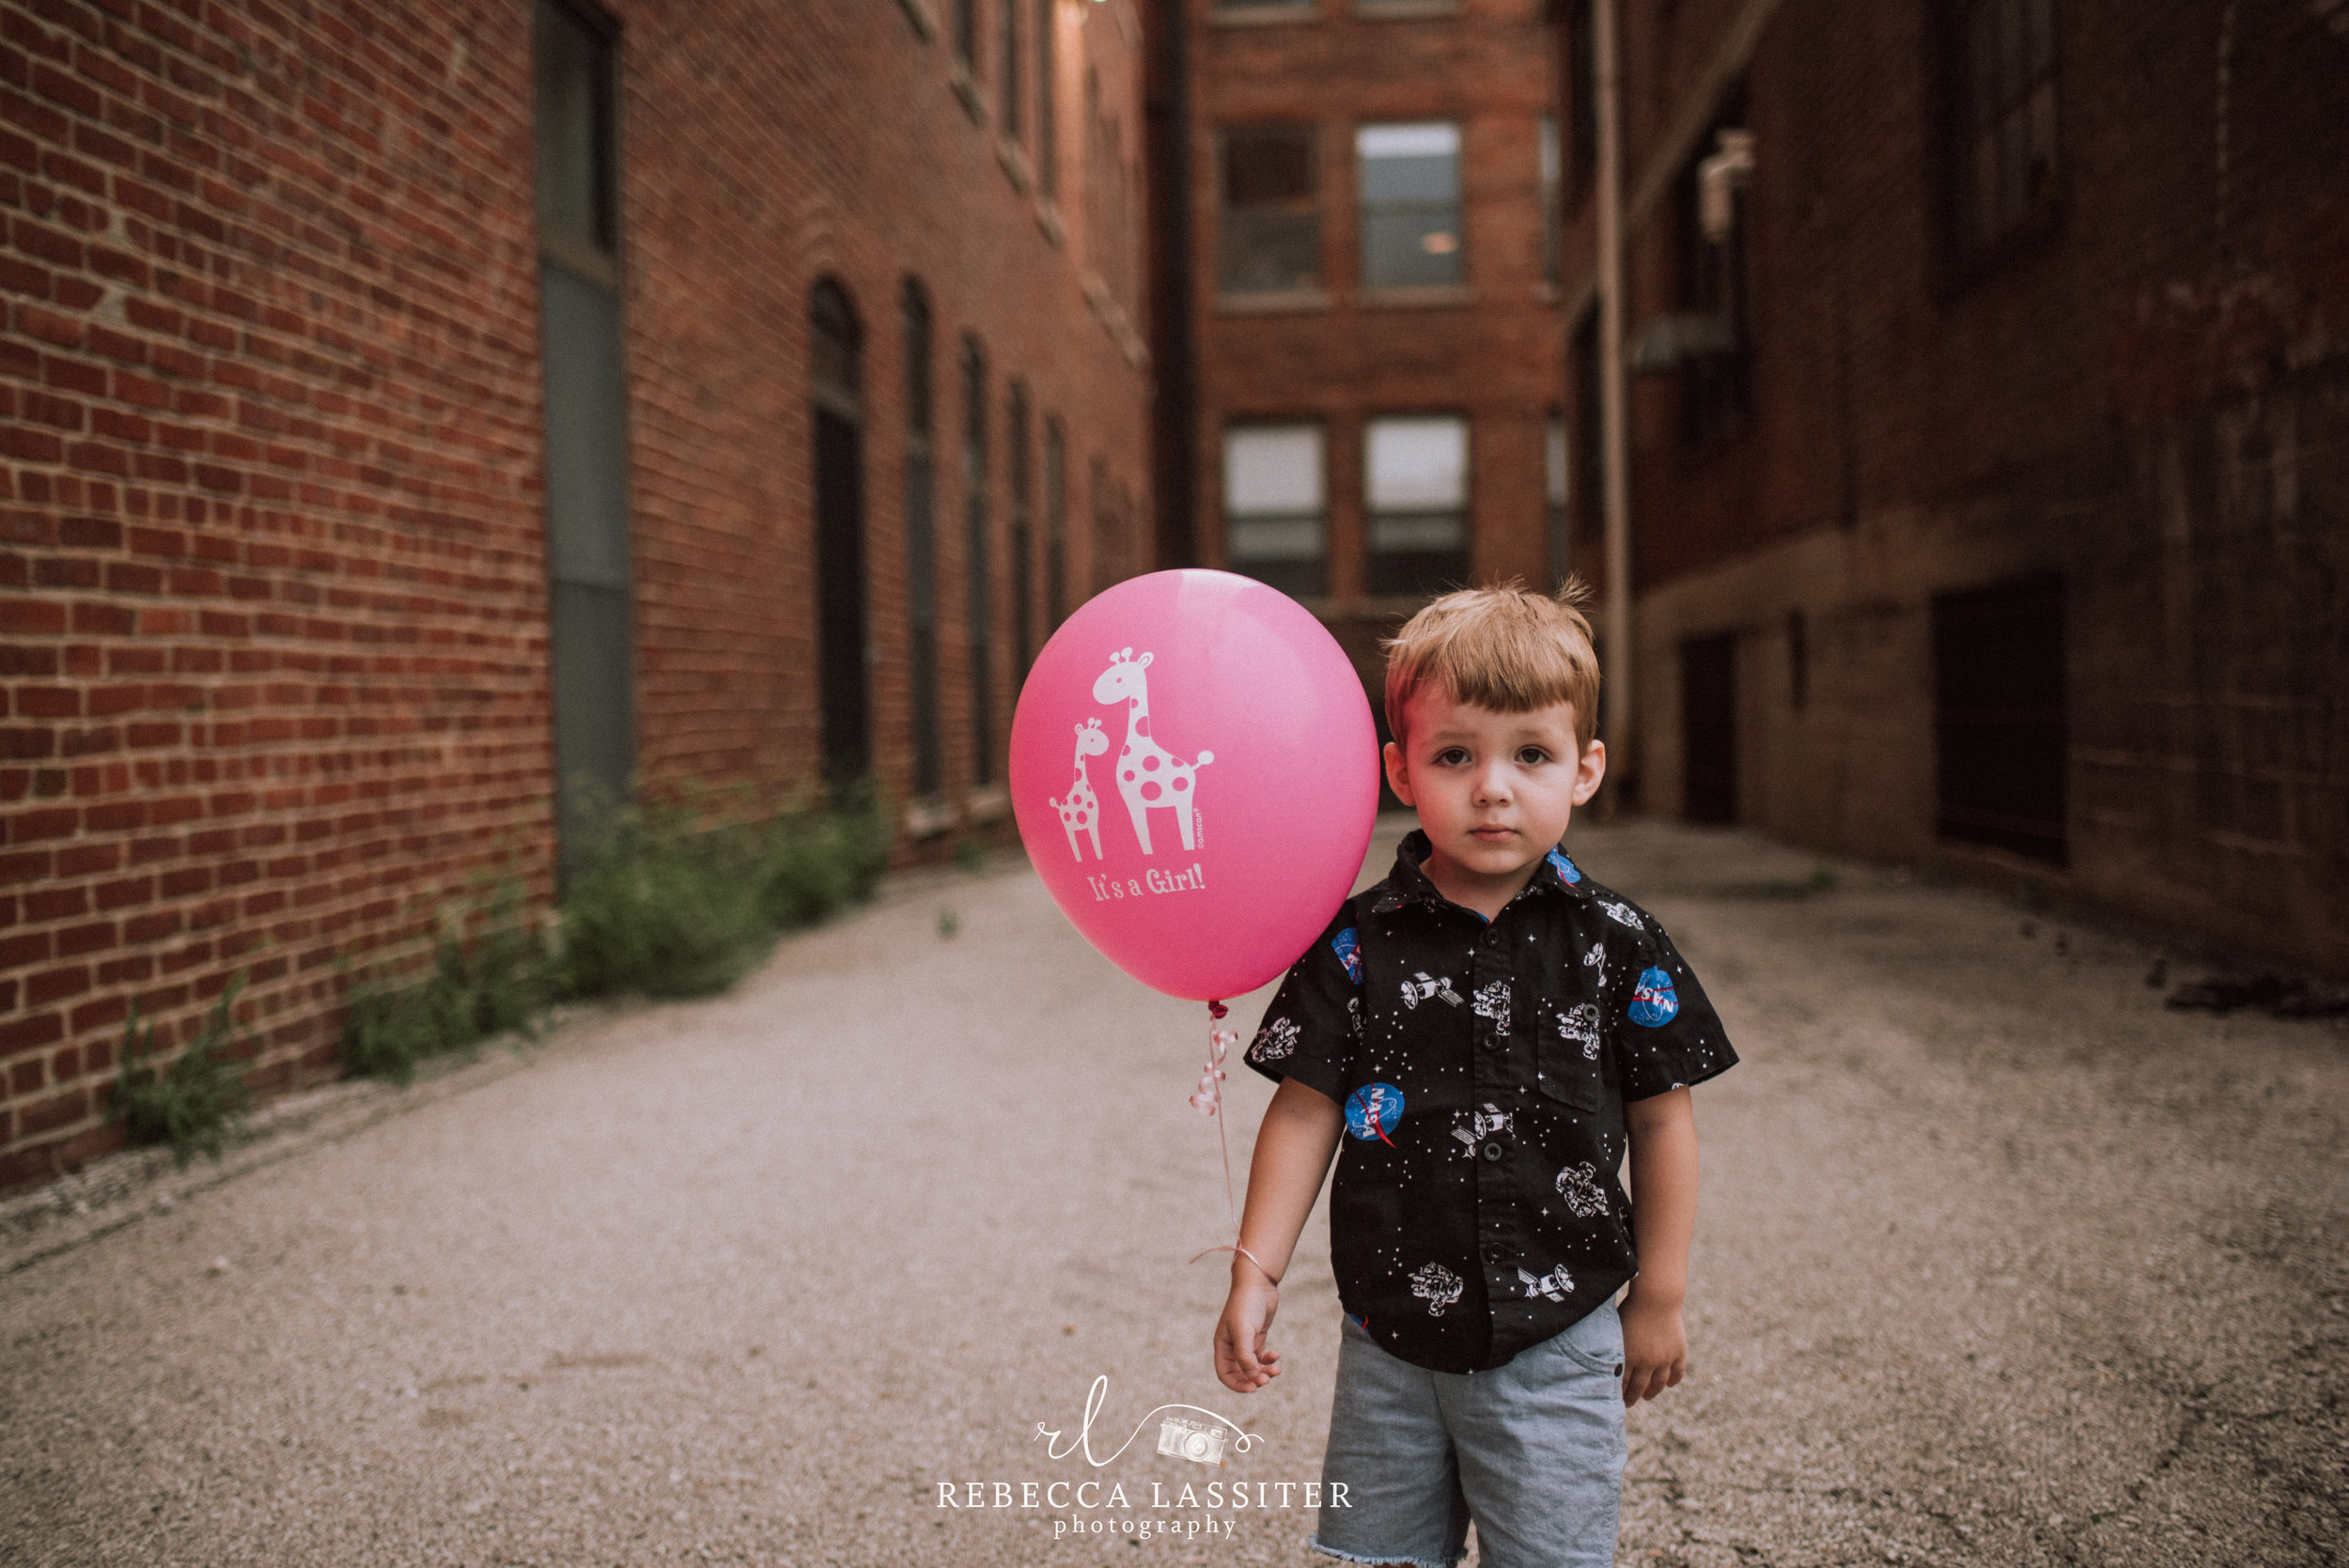 Birth Announcement - How cute and simple is this? This was about 2 seconds of pause before he was off on his own adventure. A very candid moment as he stood with this balloon. About as posed as a two year old gets.